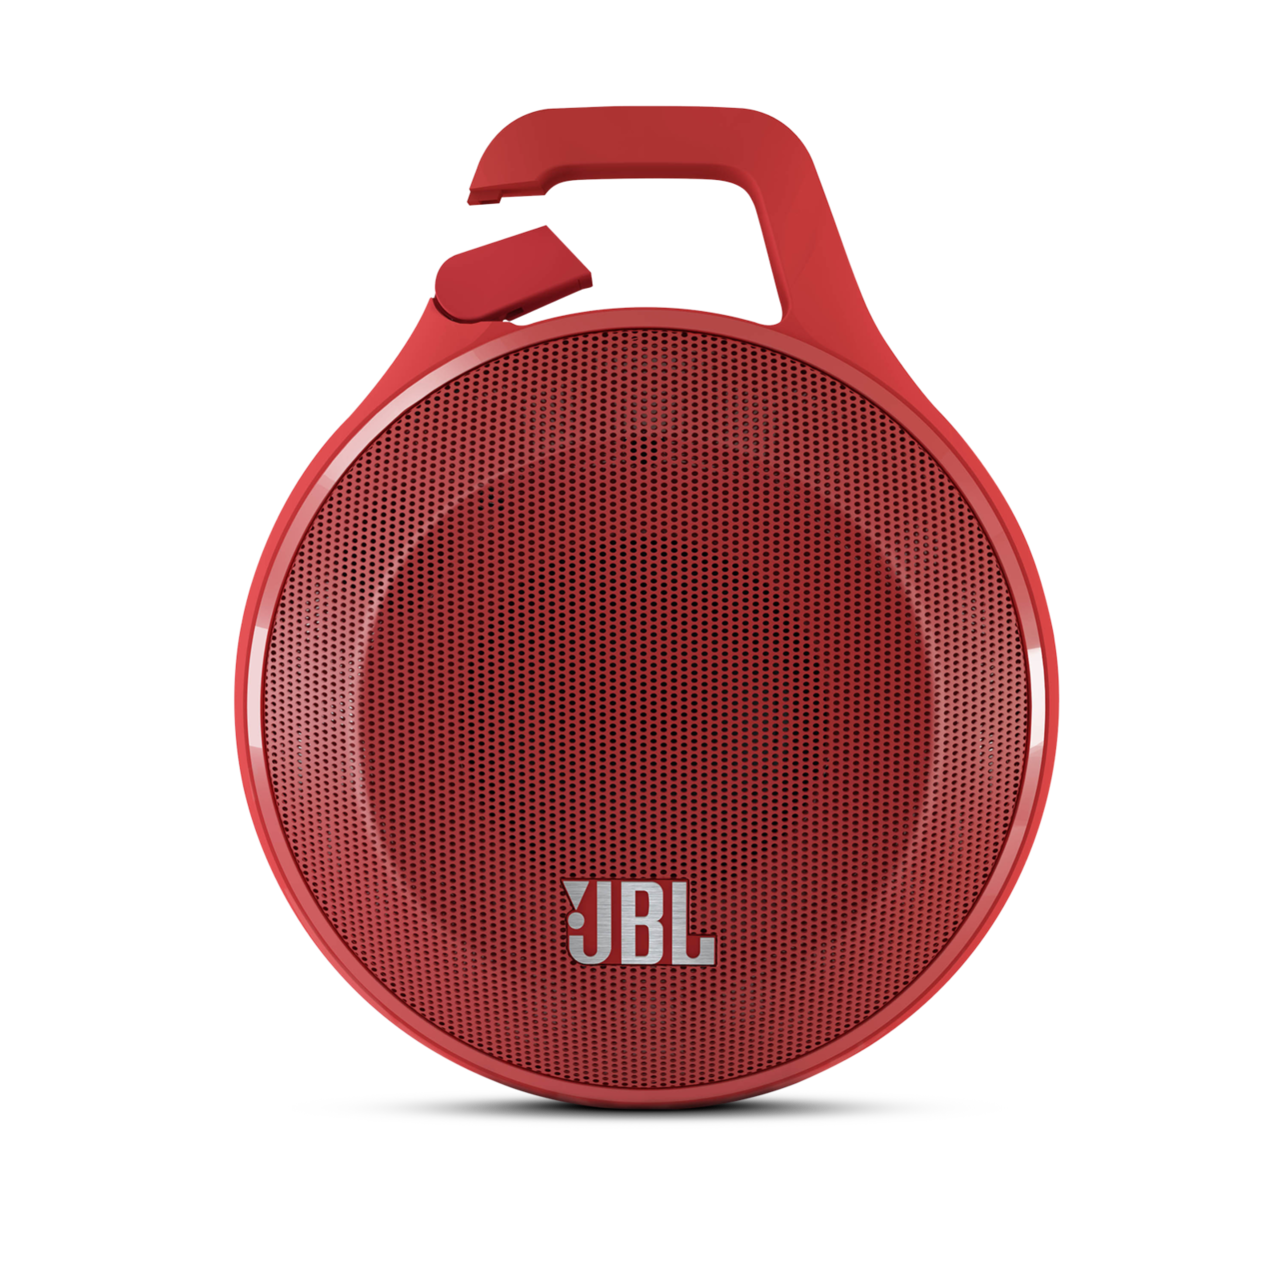 JBL Clip Portable Bluetooth Speakers (Refurbished)  $15 + Free 2-Day Shipping